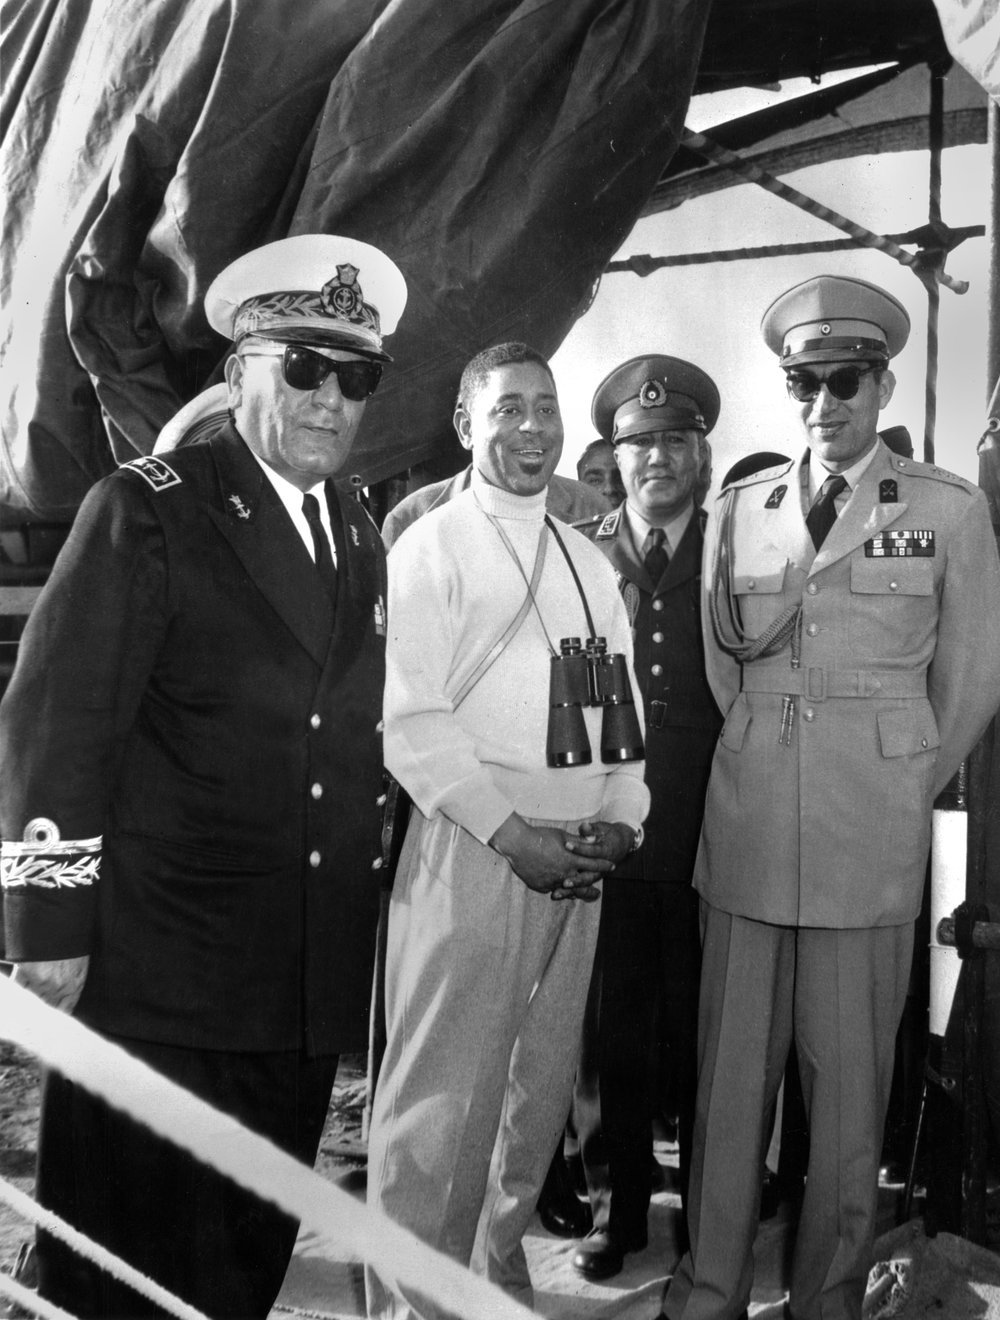 Dizzy Gillespie poses with the Shah of Iran, Mohammad Reza Pahlavi (right), in Iran, 1956. Credit: Malcolm Poindexter III / Courtesy of the Institute of Jazz Studies, Rutgers University